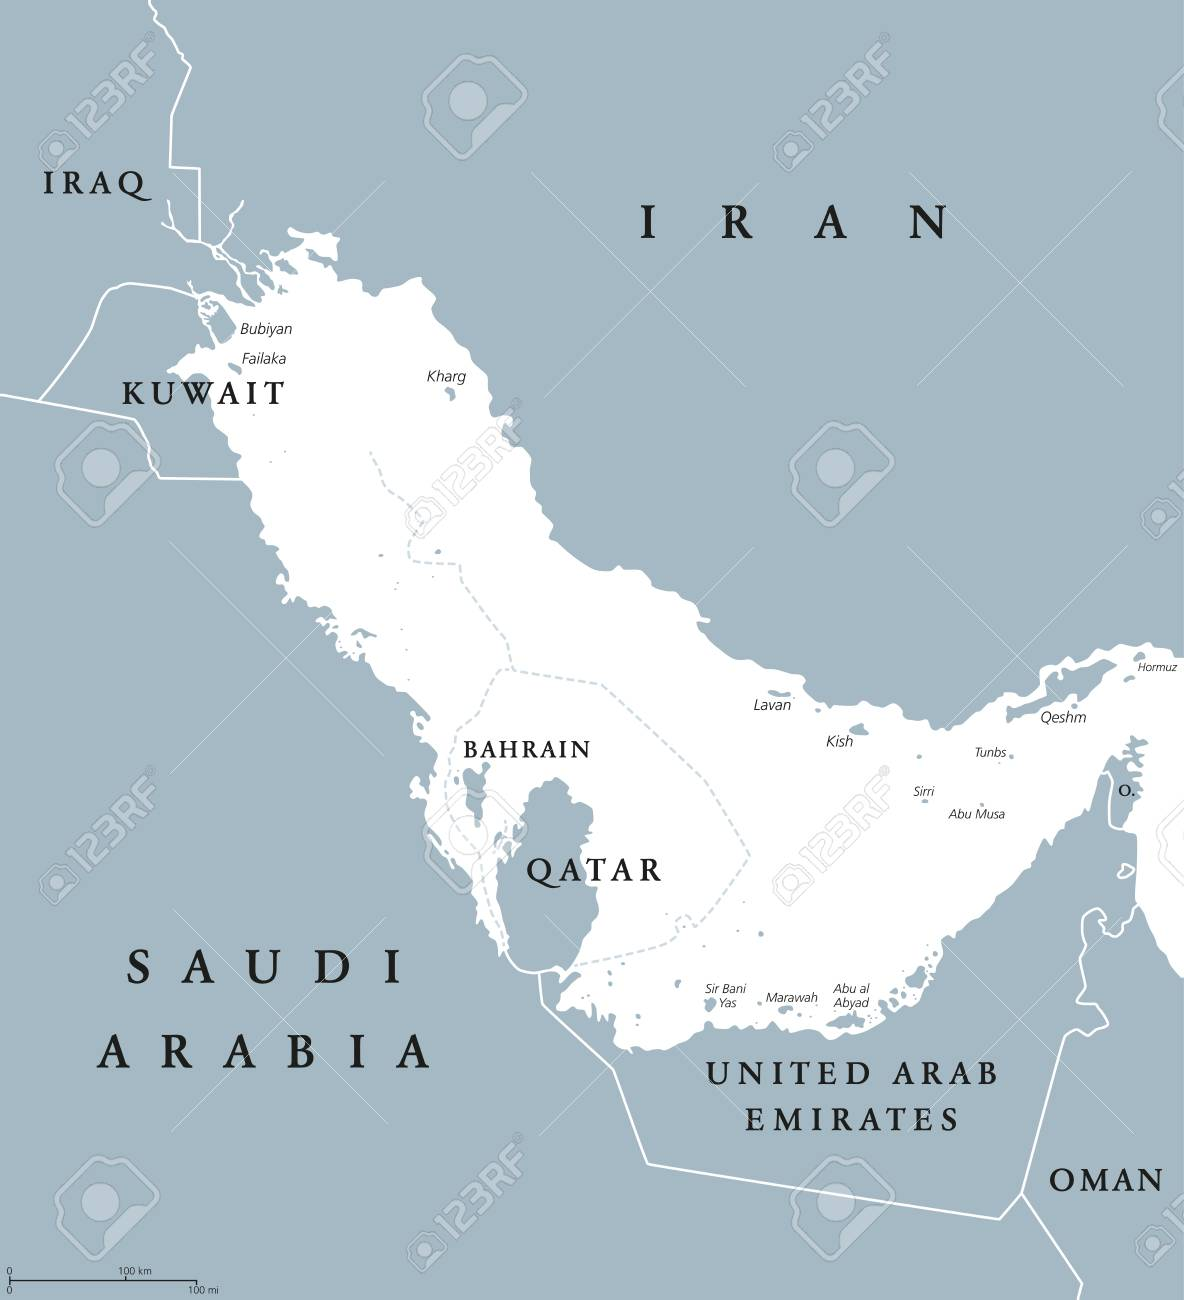 persian gulf region countries political map with english labeling body of water and extension of